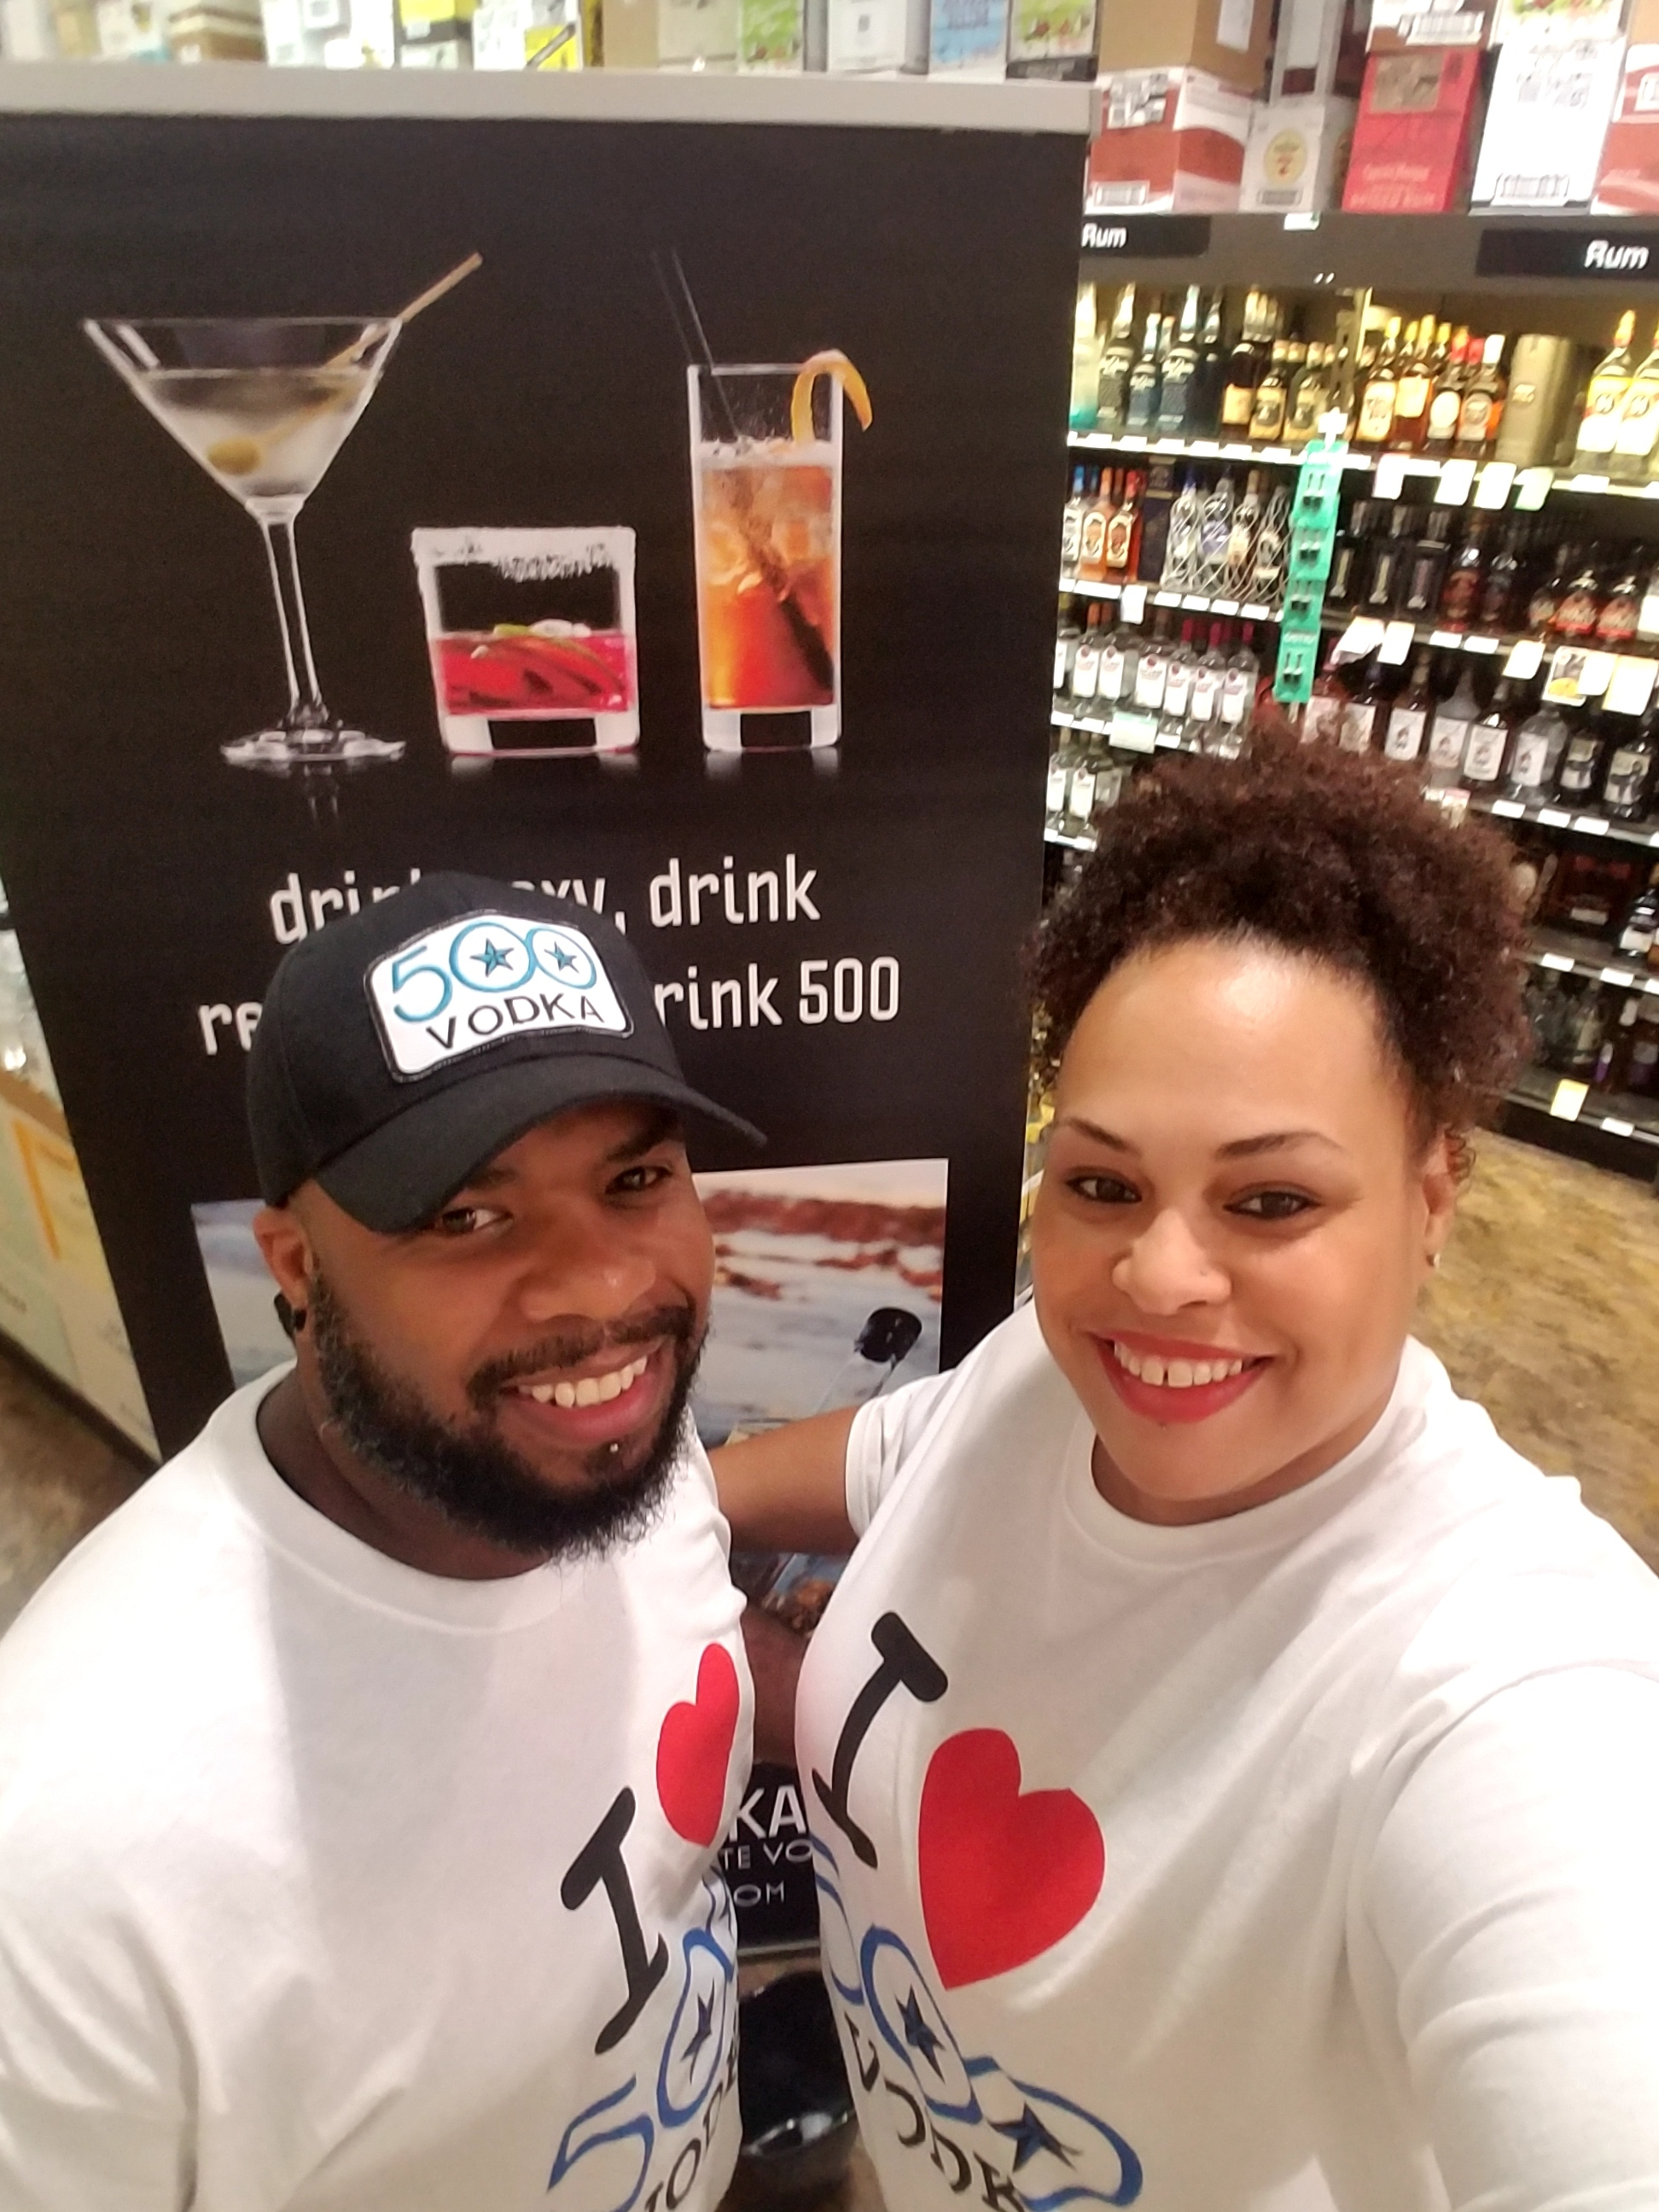 Kyle and Lateya Smith promoting 500 Vodka. Courtesy photos